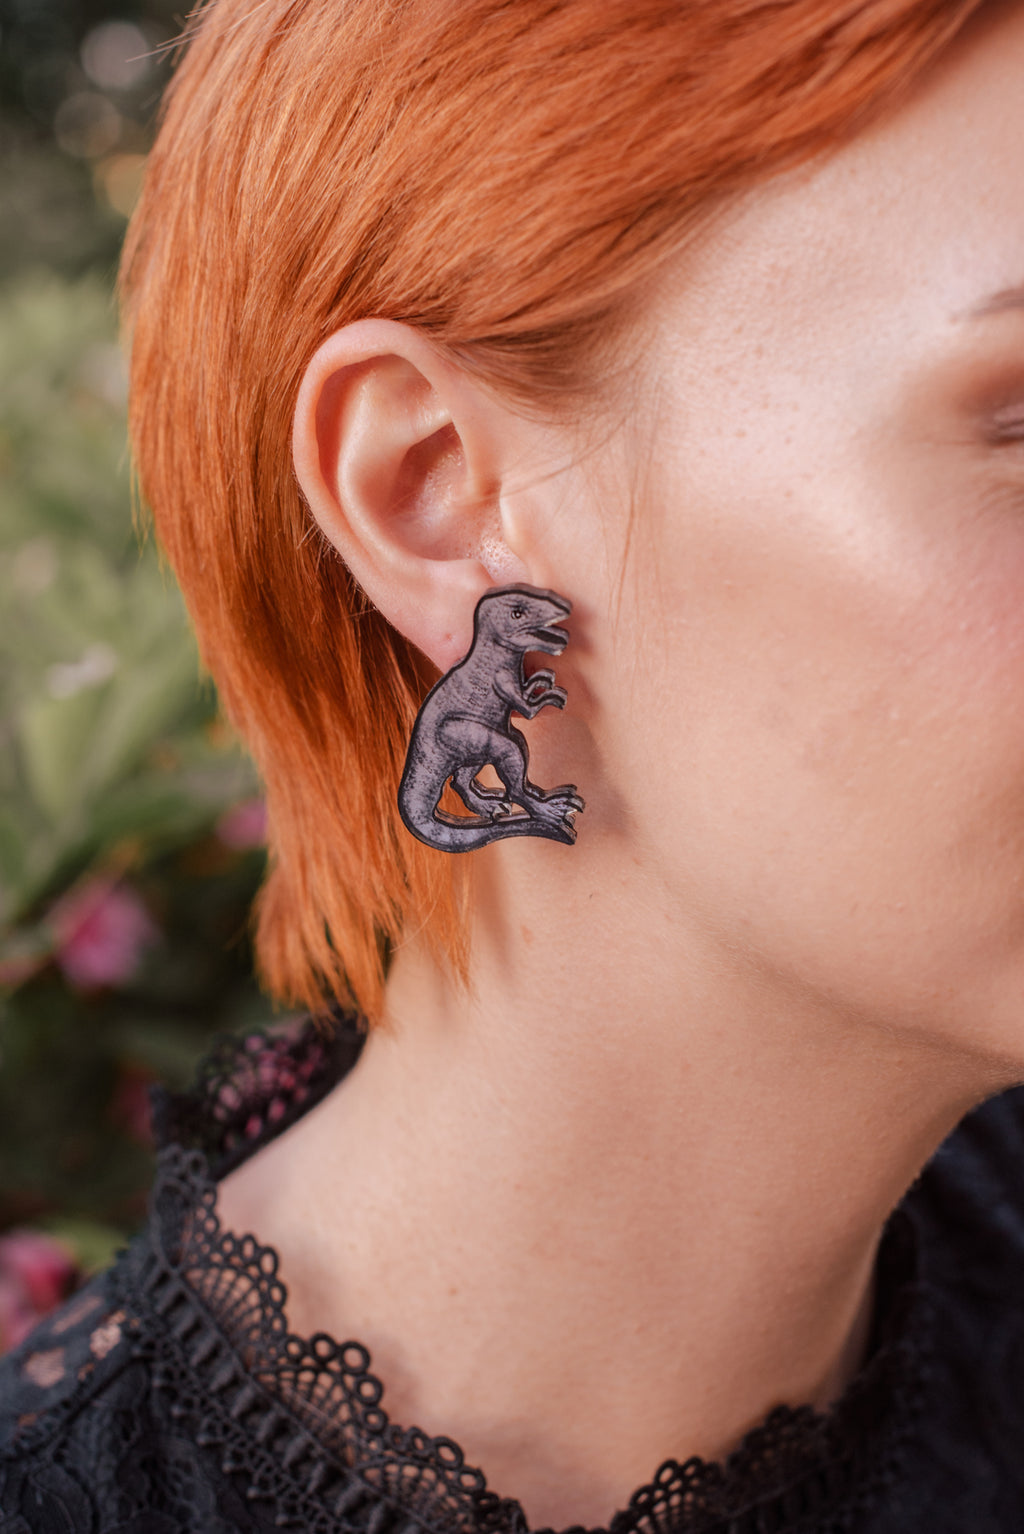 T-Rex Stud Earrings, Double Sided Silver Mirror